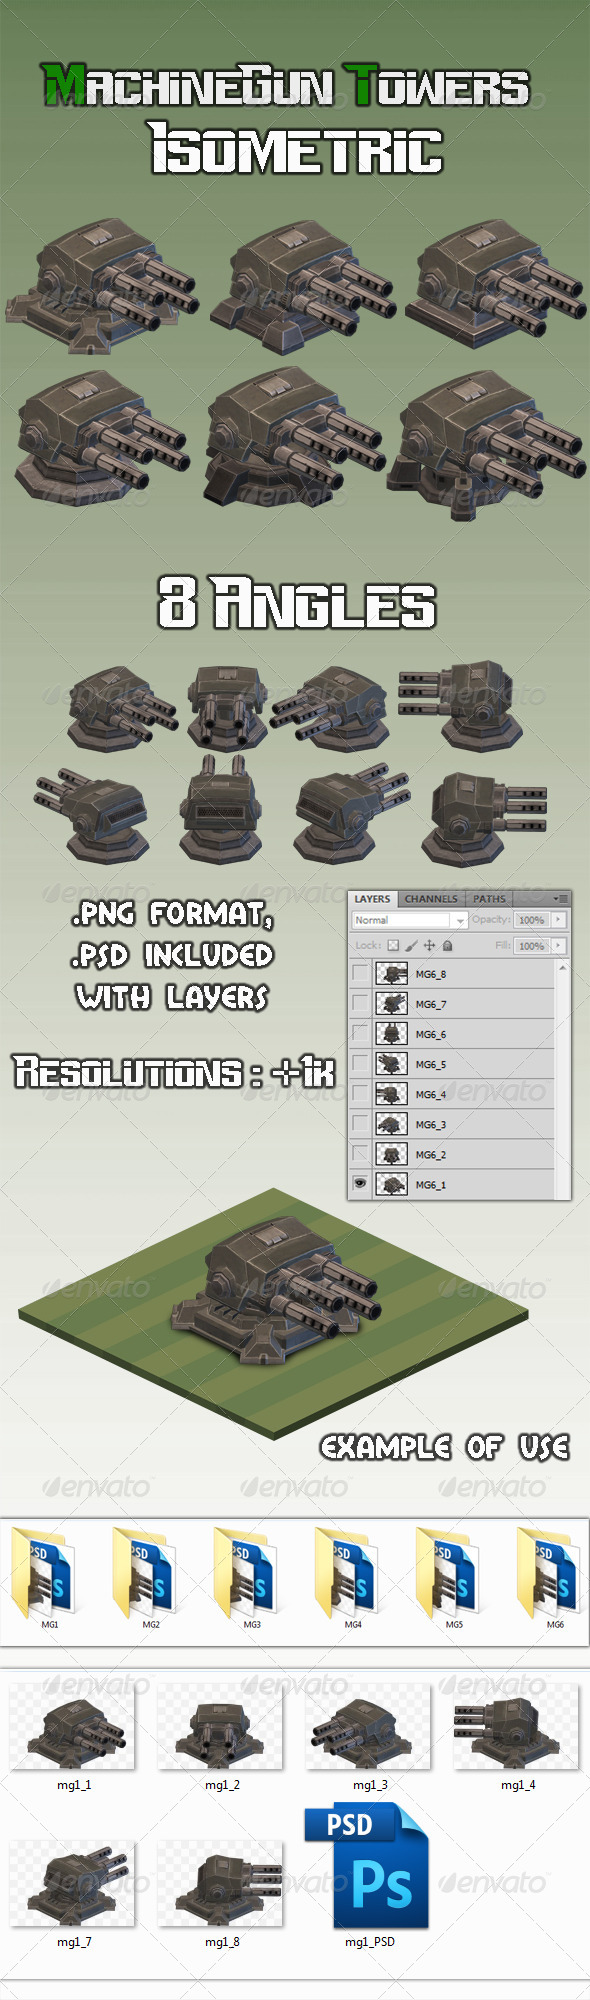 Machinegun Turret 1 Isometric